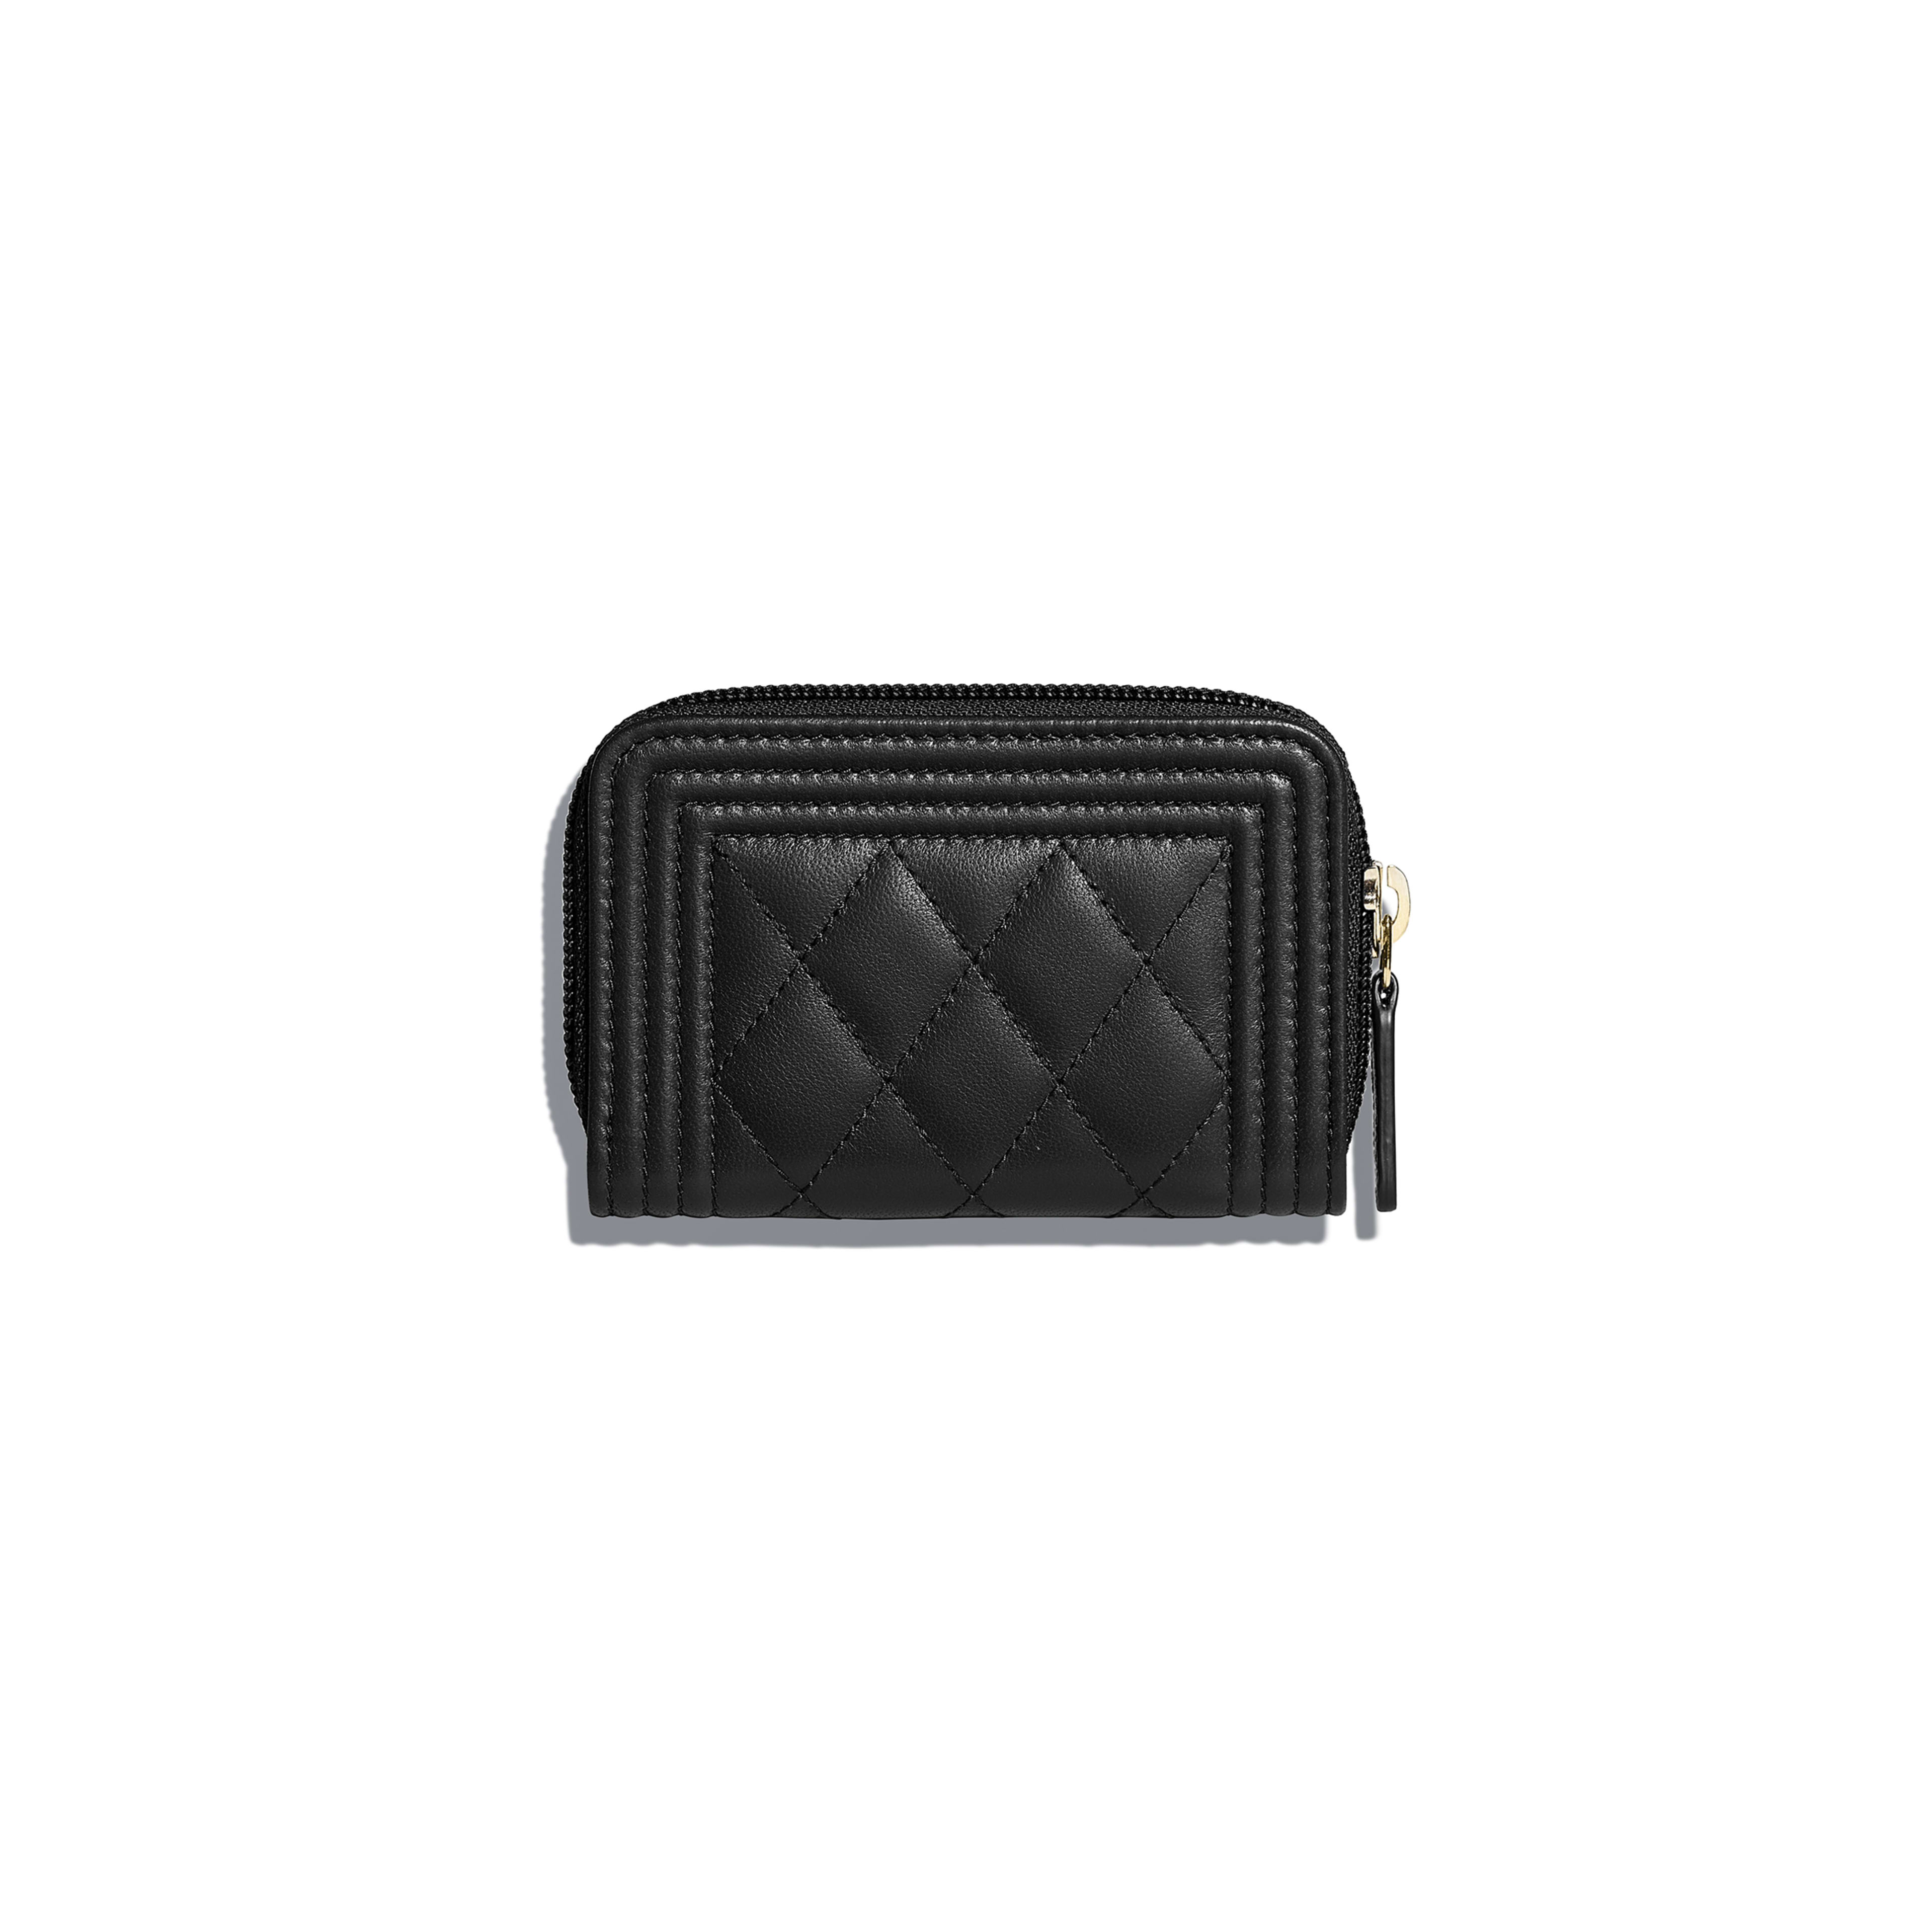 996a42983d Lambskin & Gold-Tone Metal Black BOY CHANEL Zipped Coin Purse | CHANEL